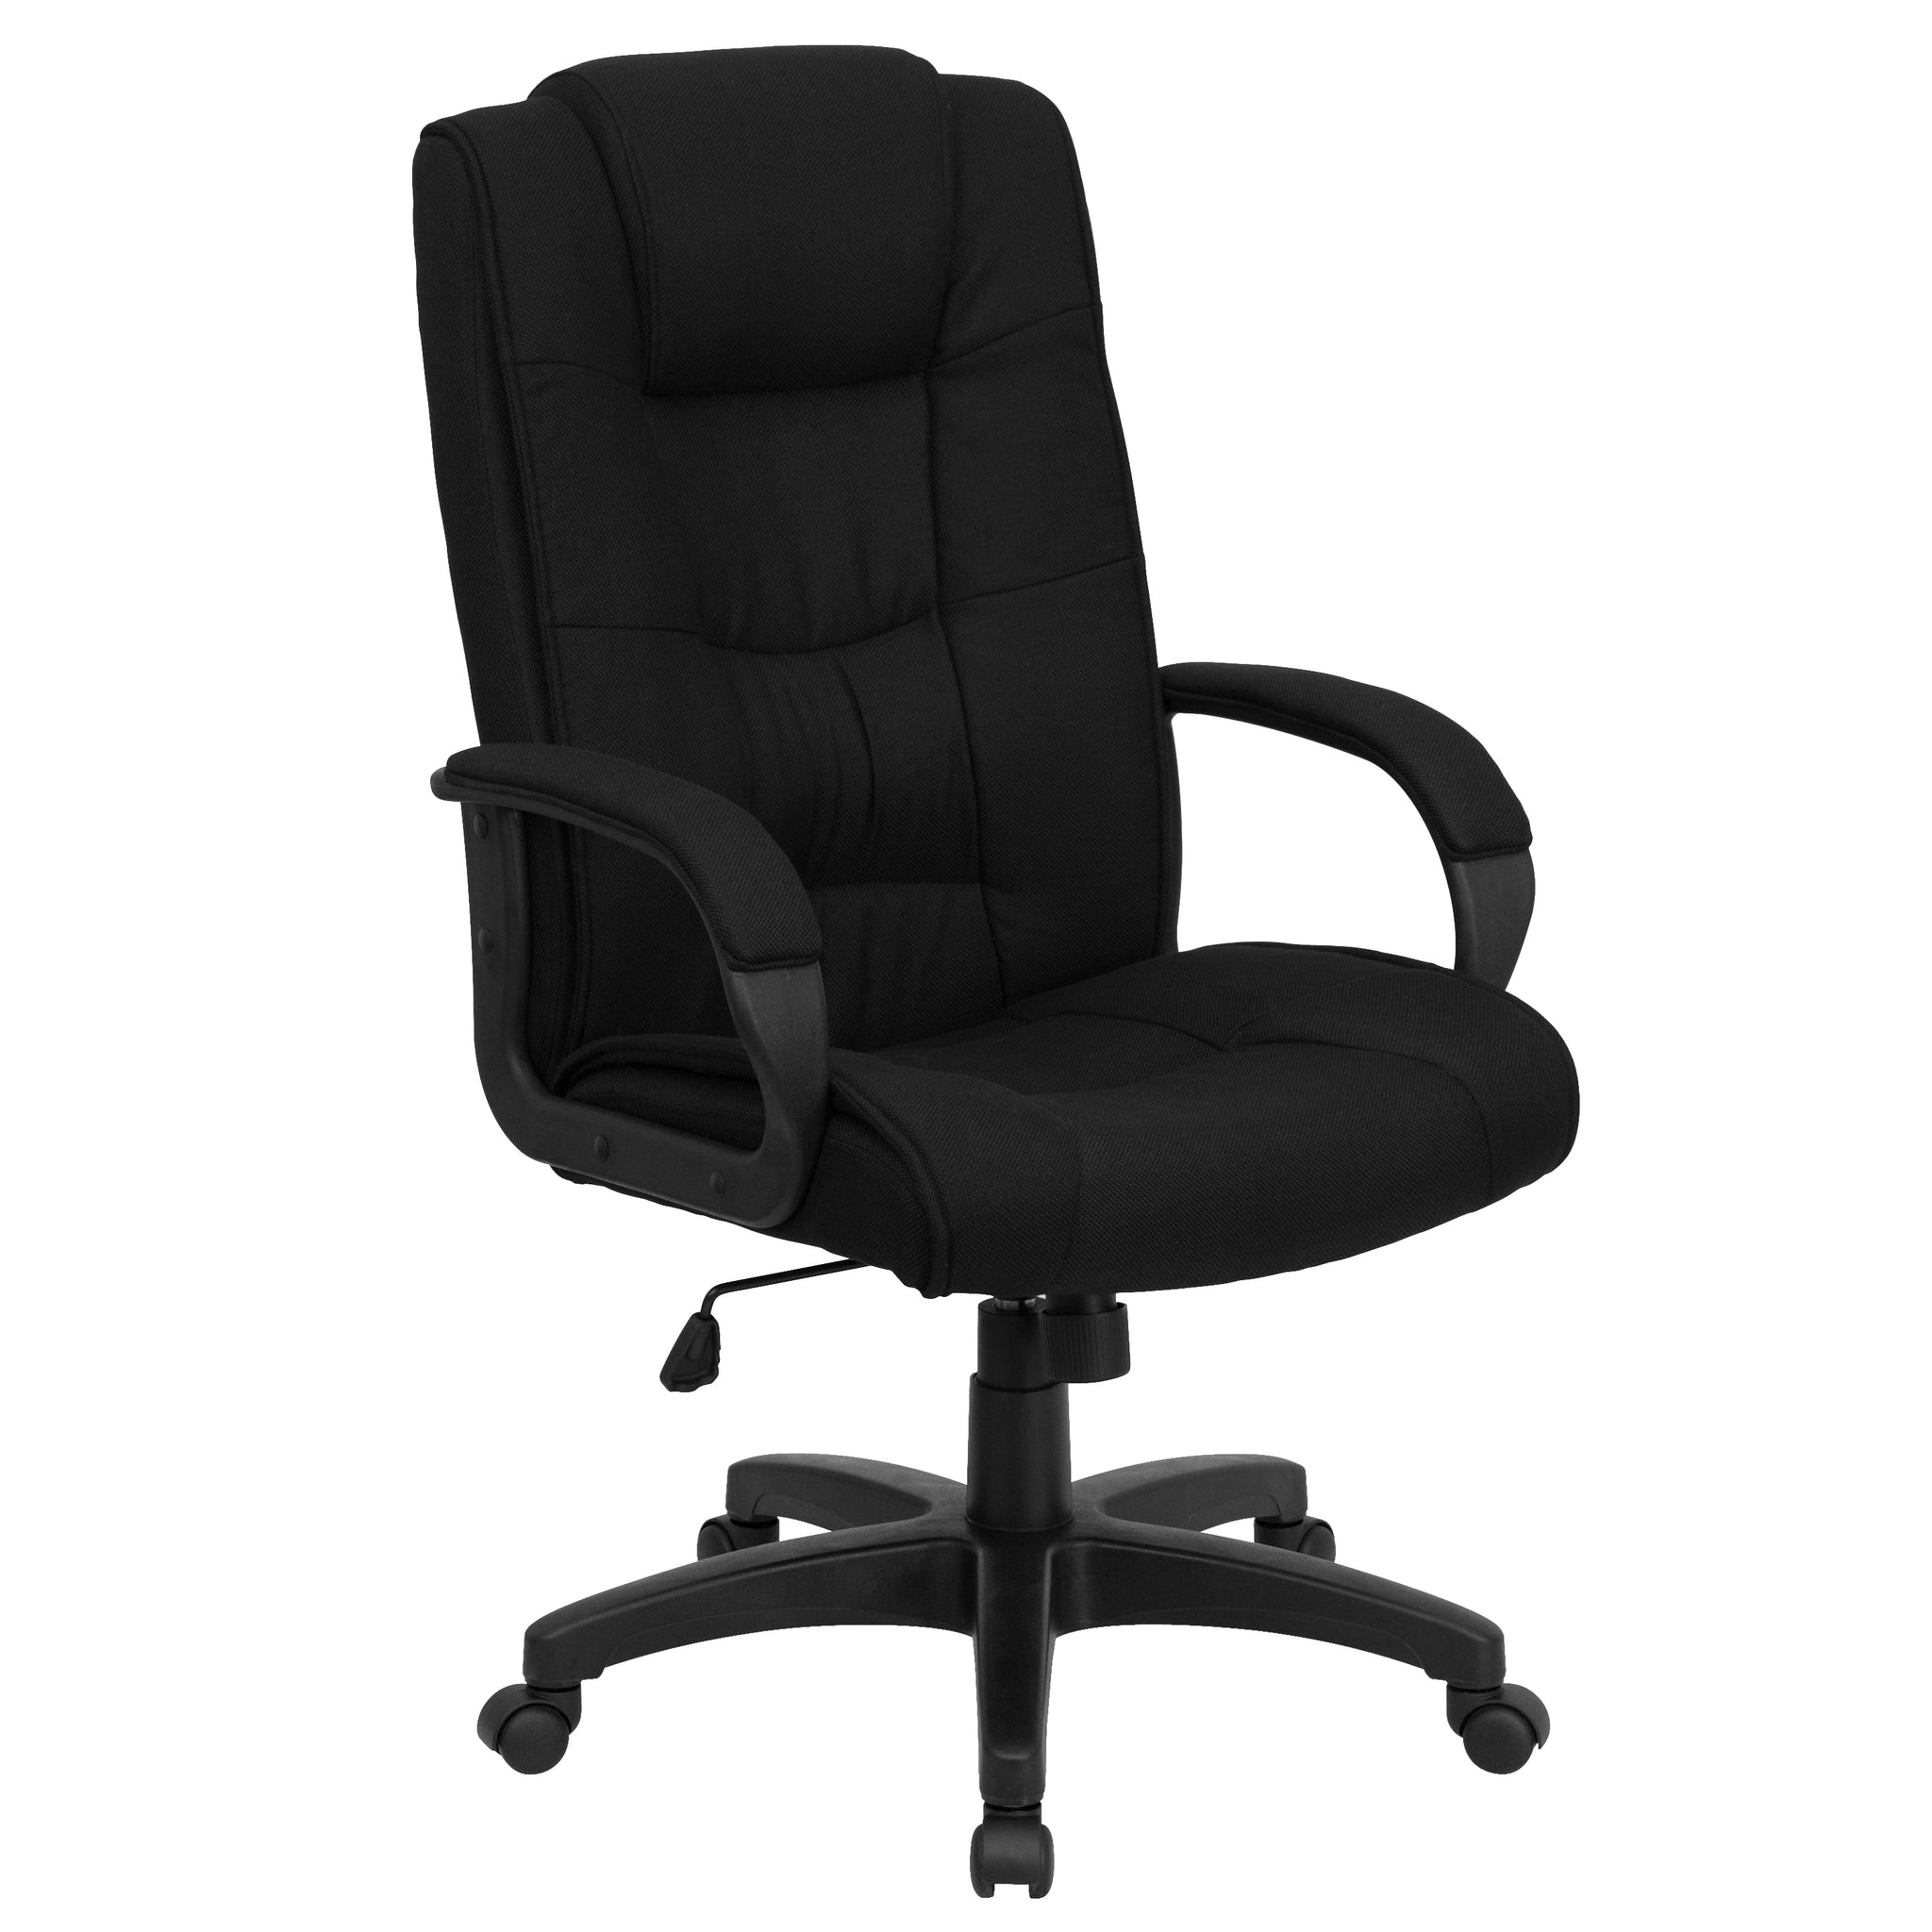 High Back Executive Swivel Office Chair: Black Fabric